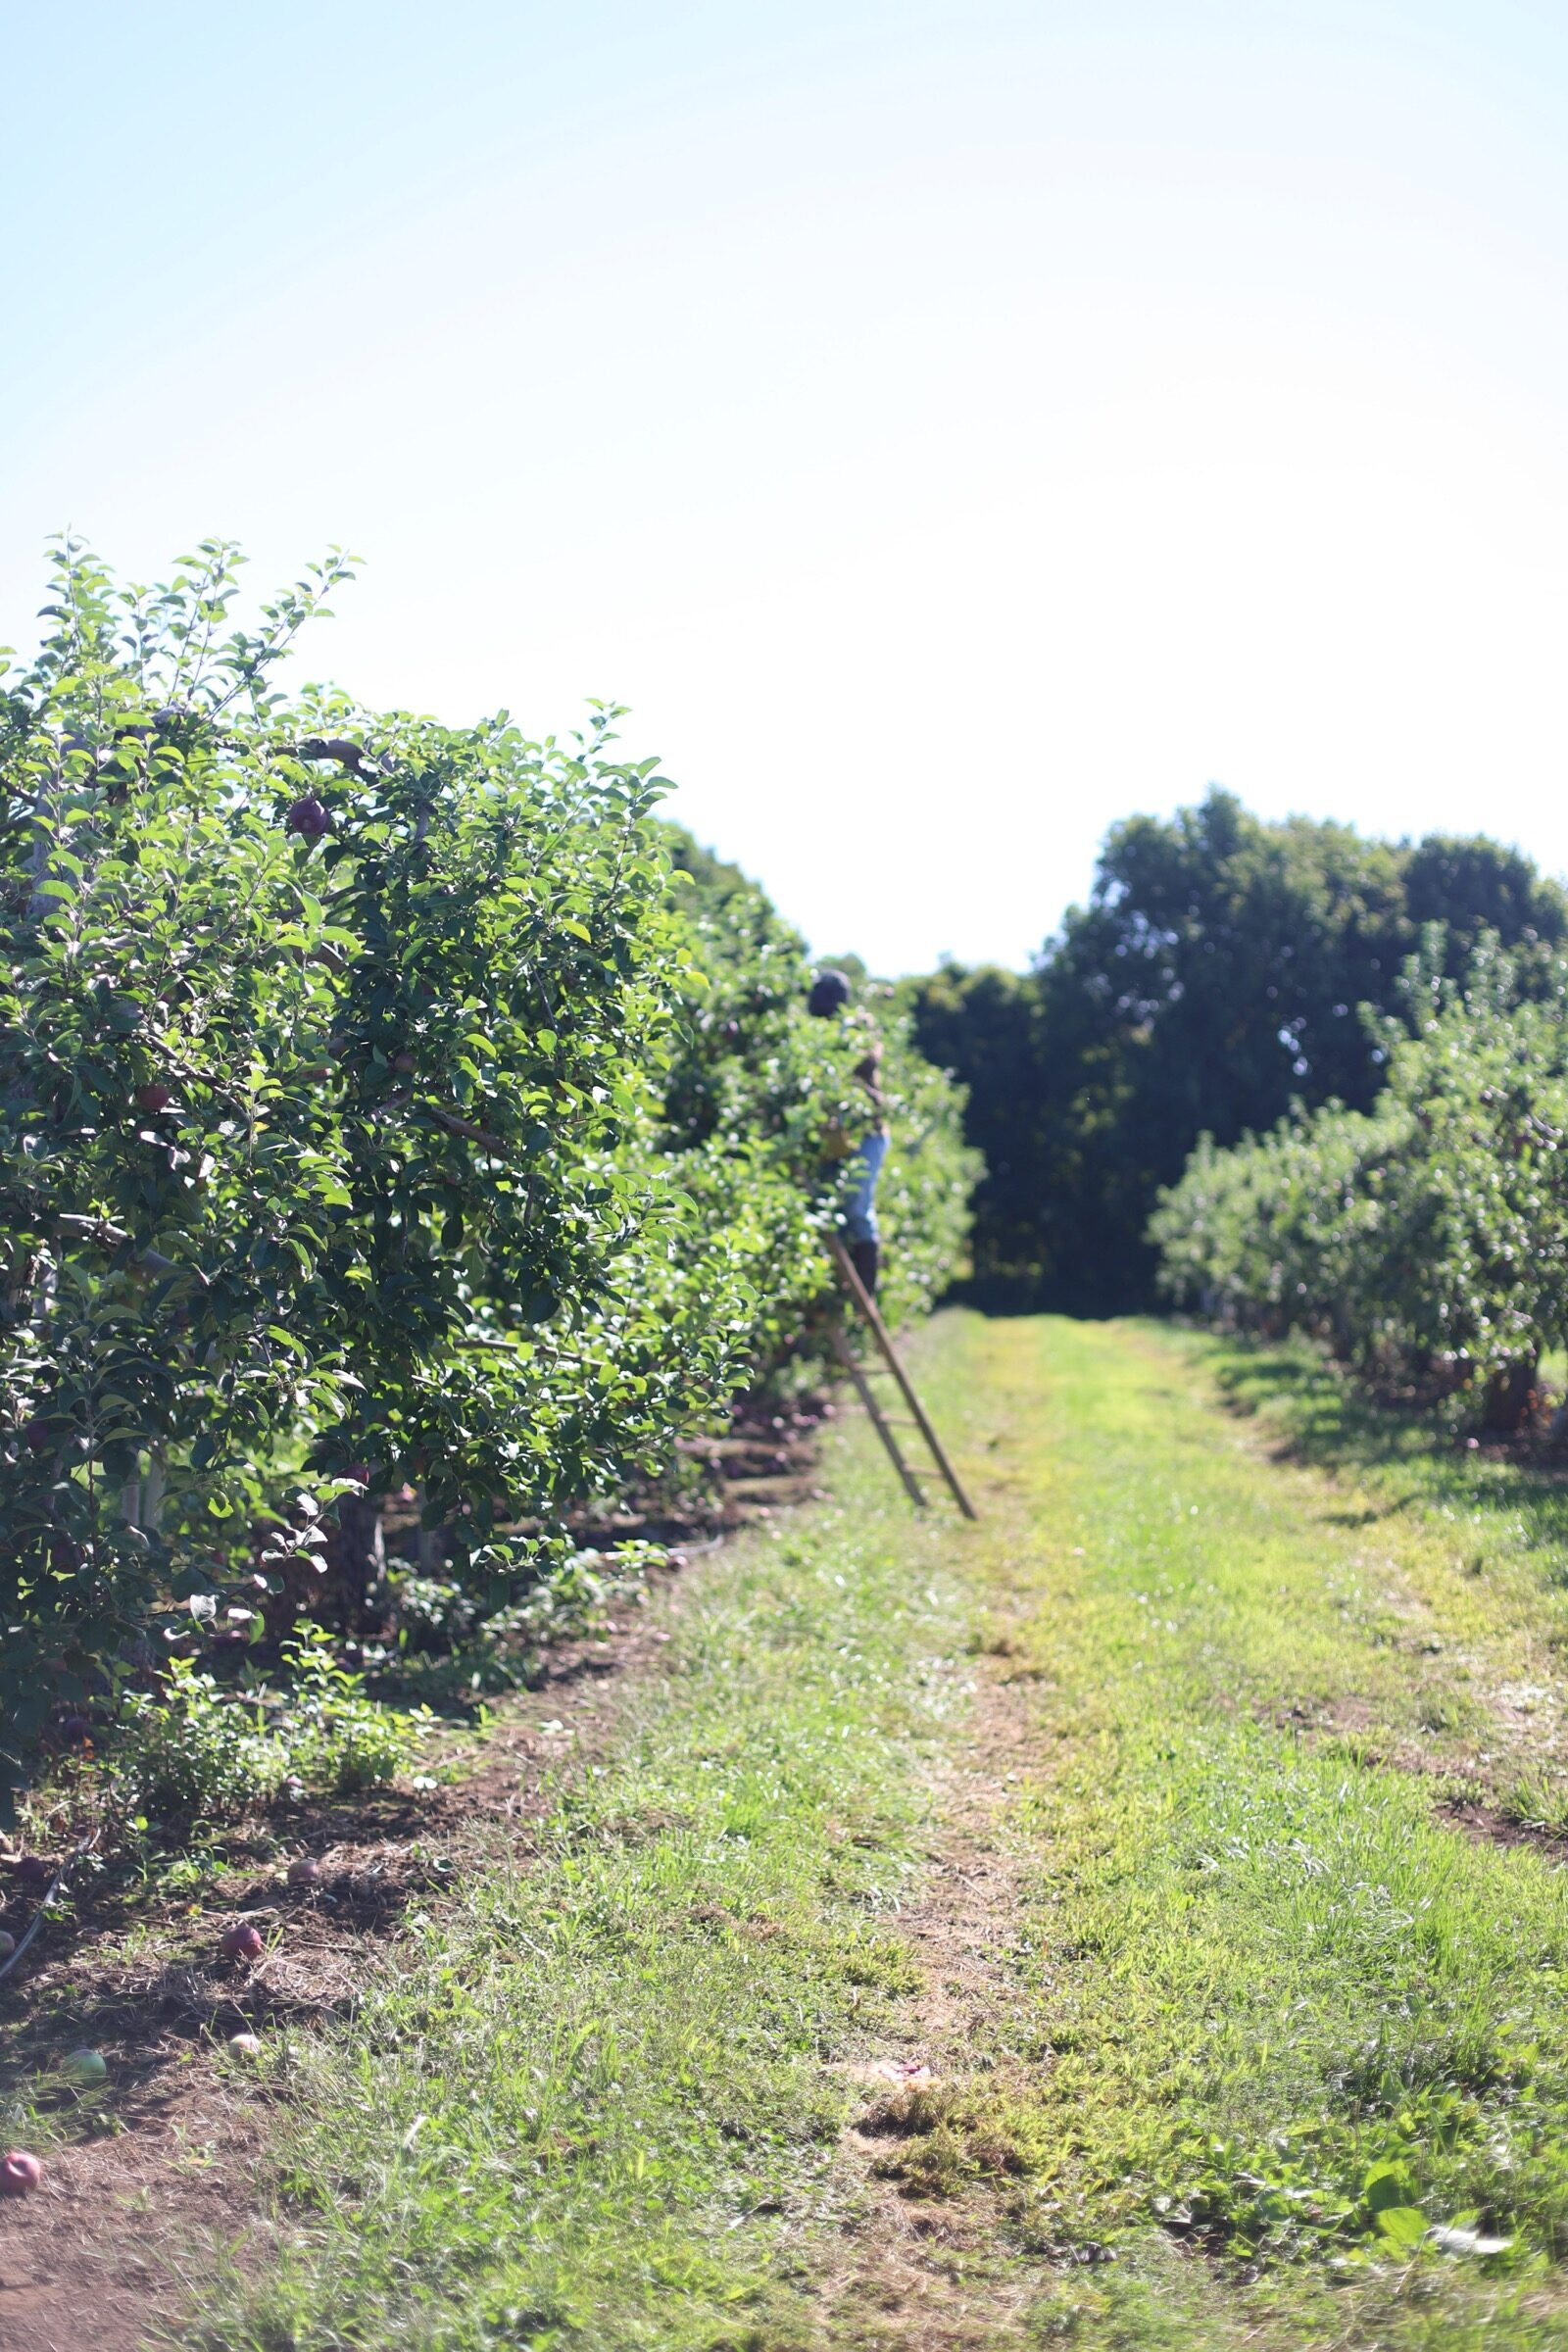 A trip to an apple orchard here in New England, complete with apple picking, barnyard animals, hayrides, and homemade donuts and pie. // Brooksby Farm in Peabody, Massachusetts // Fall Bucket List | glitterinc.com | @glitterinc